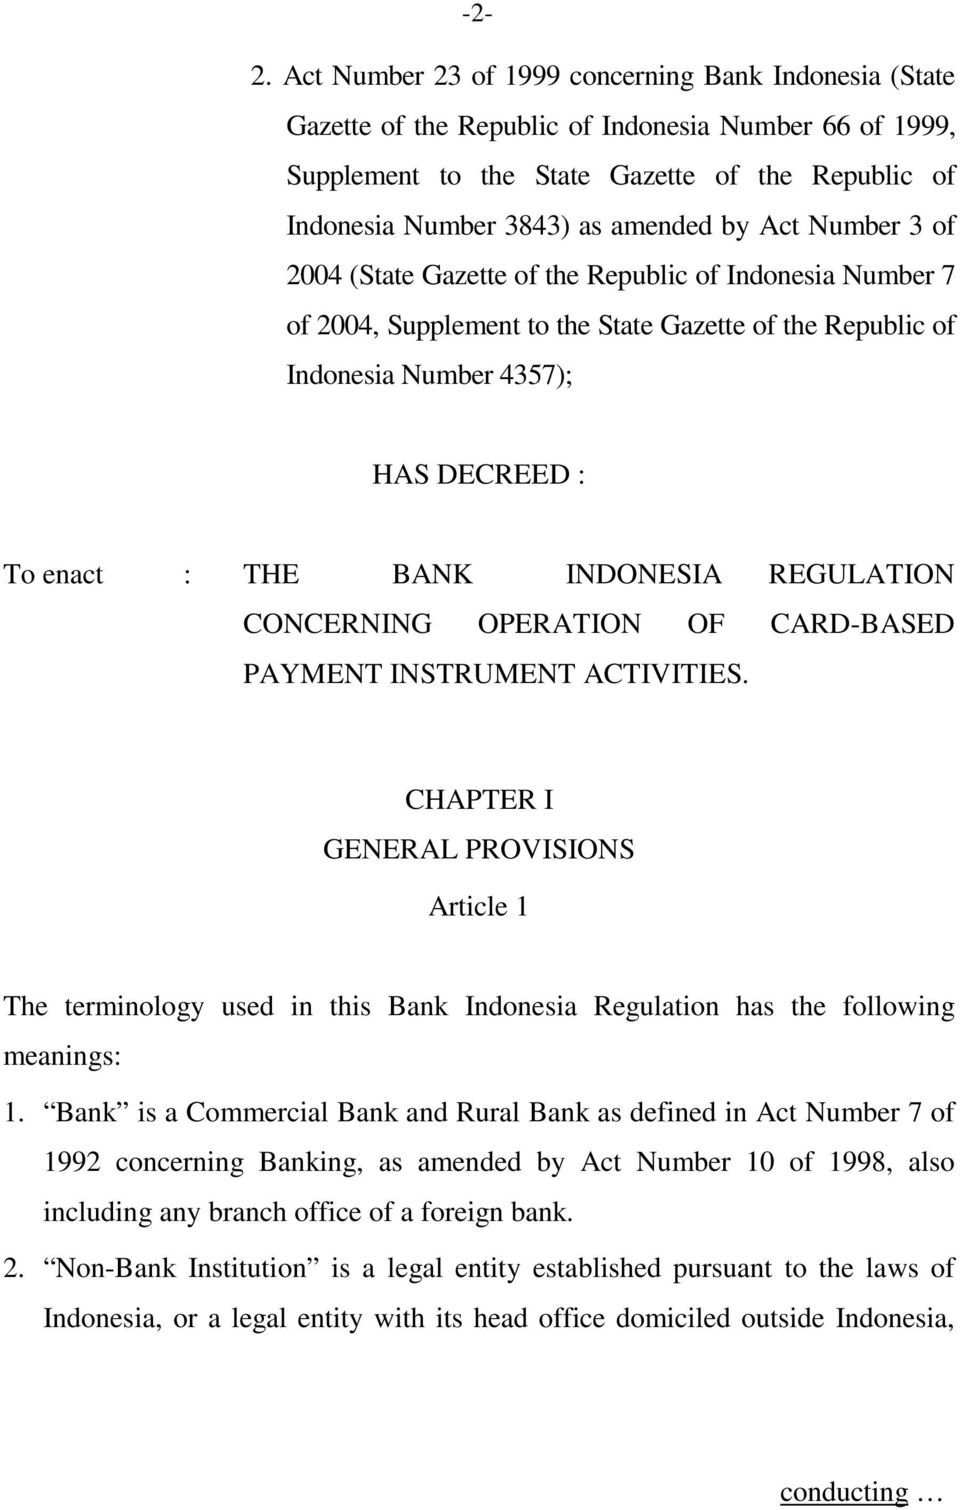 BANK INDONESIA REGULATION CONCERNING OPERATION OF CARD-BASED PAYMENT INSTRUMENT ACTIVITIES.